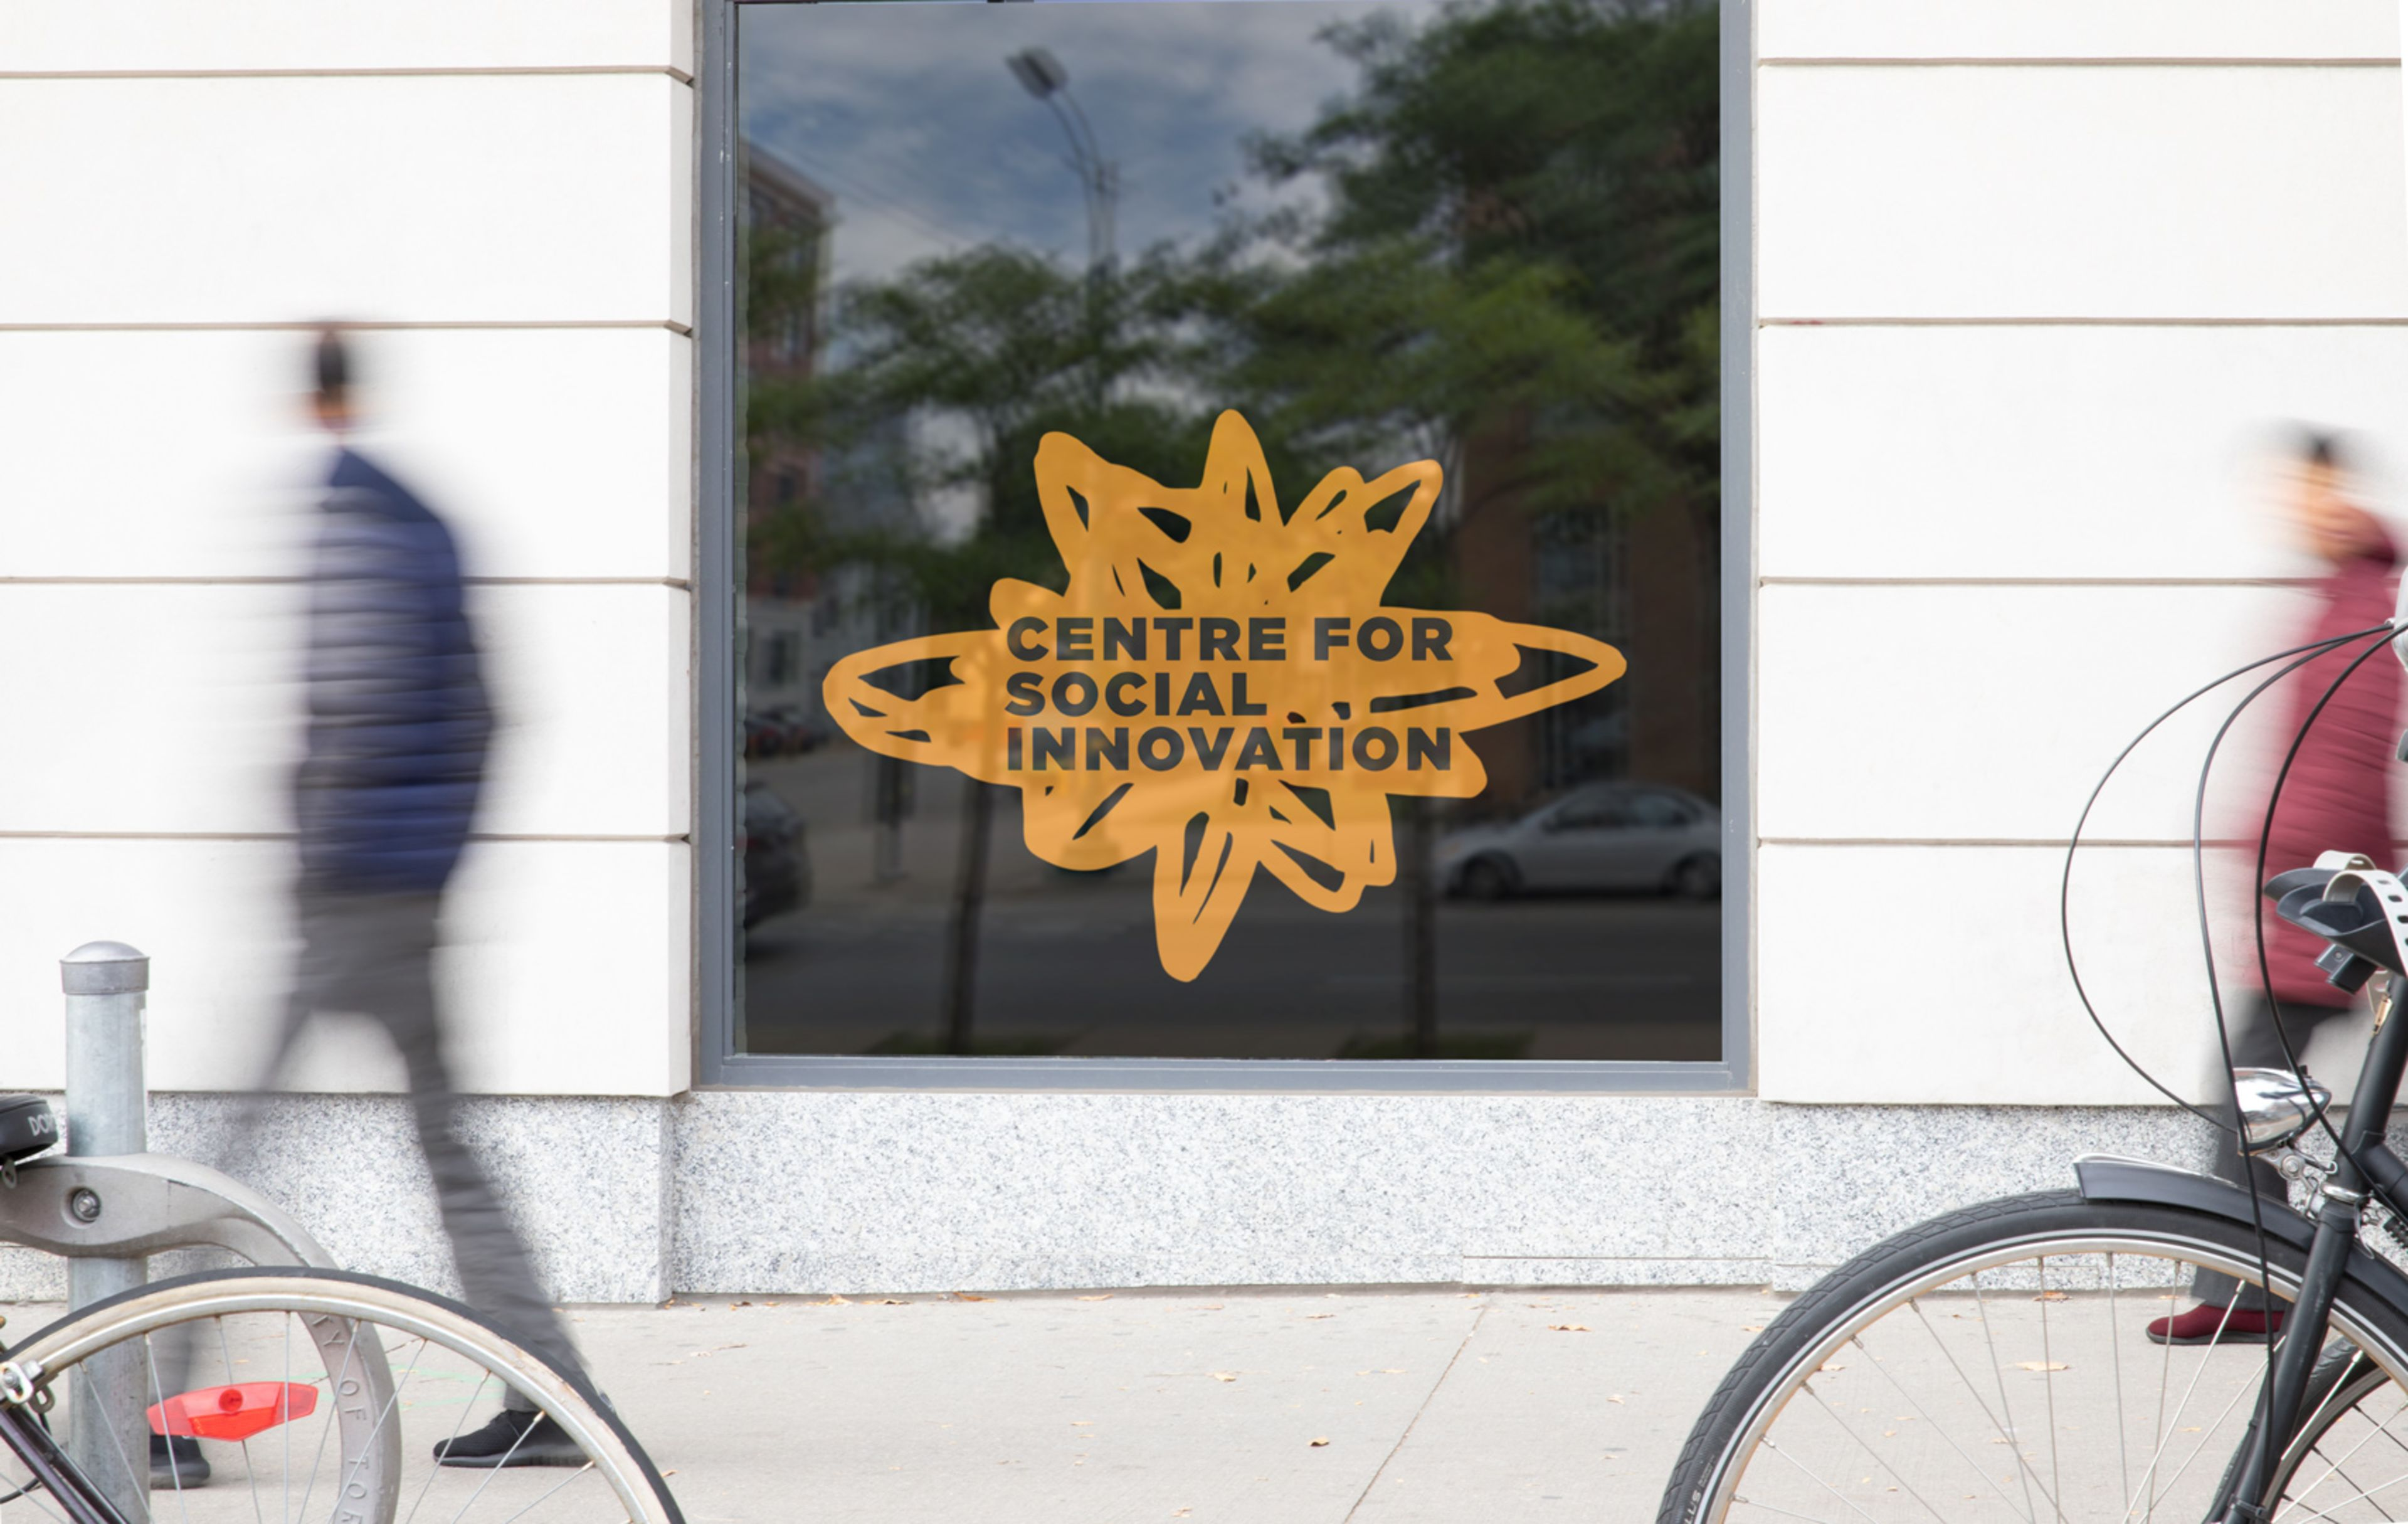 Centre for Social Innovation street-level branding on a window. In the reflection is busy Spadina Avenue in Toronto. People walking by, bikes locked up.